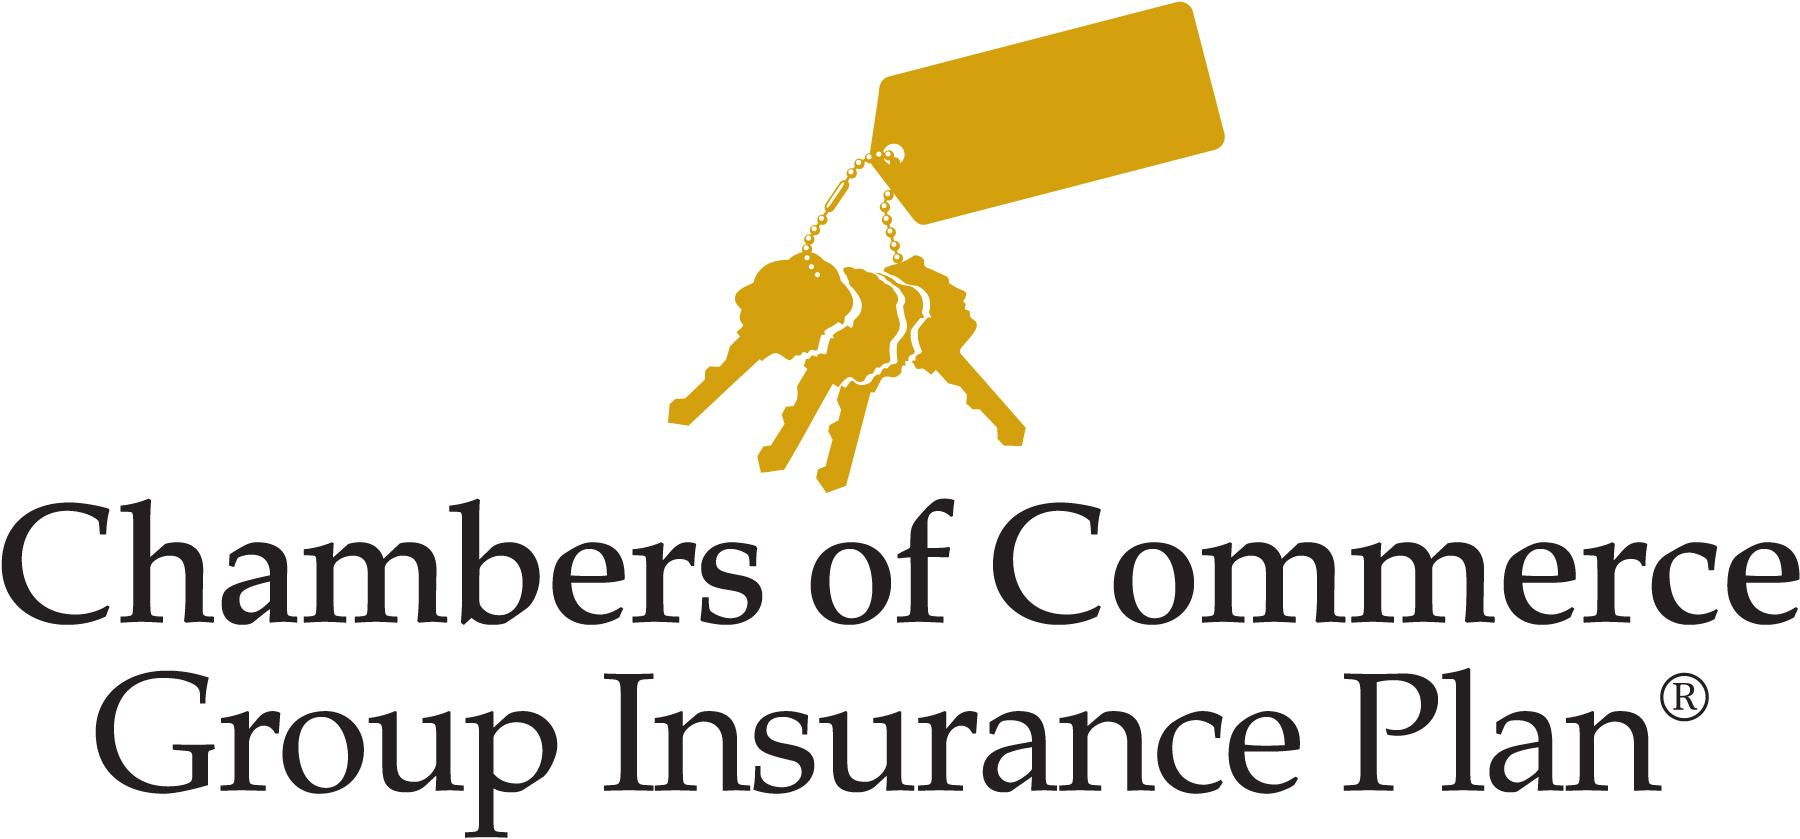 Chamber Group Insurance Plan